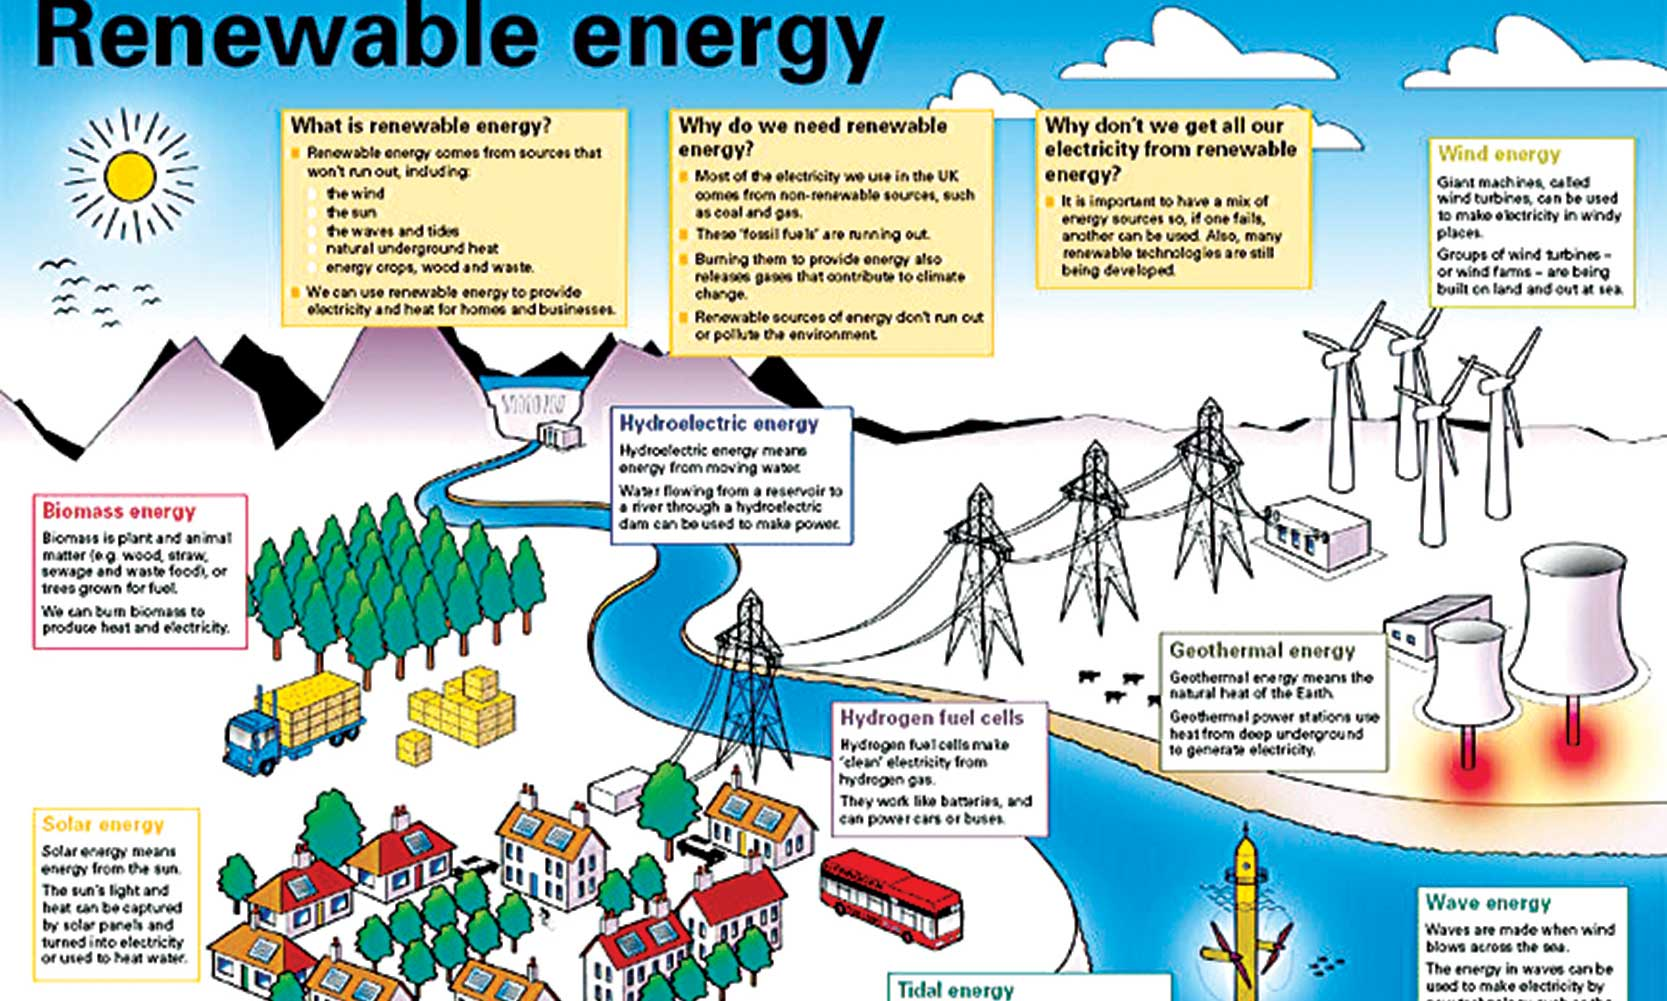 Scientists Intensify Probe For Alternative Energy Sources